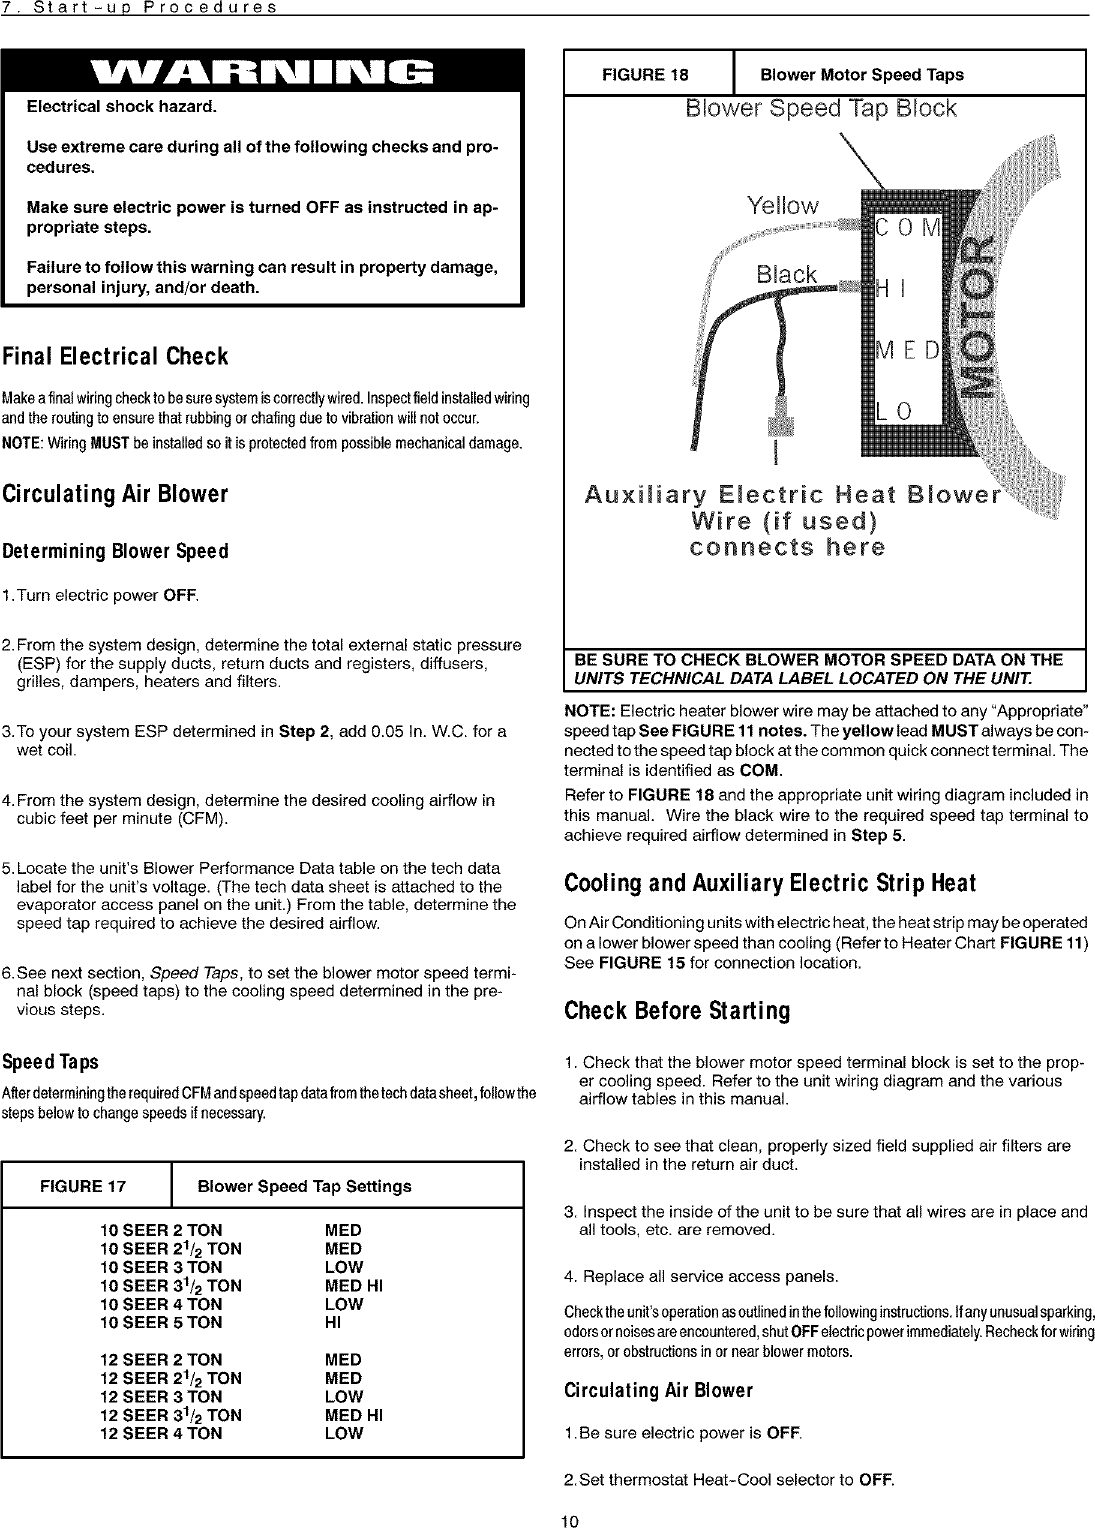 Icp Package Unitsboth Units Combined Manual L0522838 5 Ton Wiring Diagram Page 10 Of 12